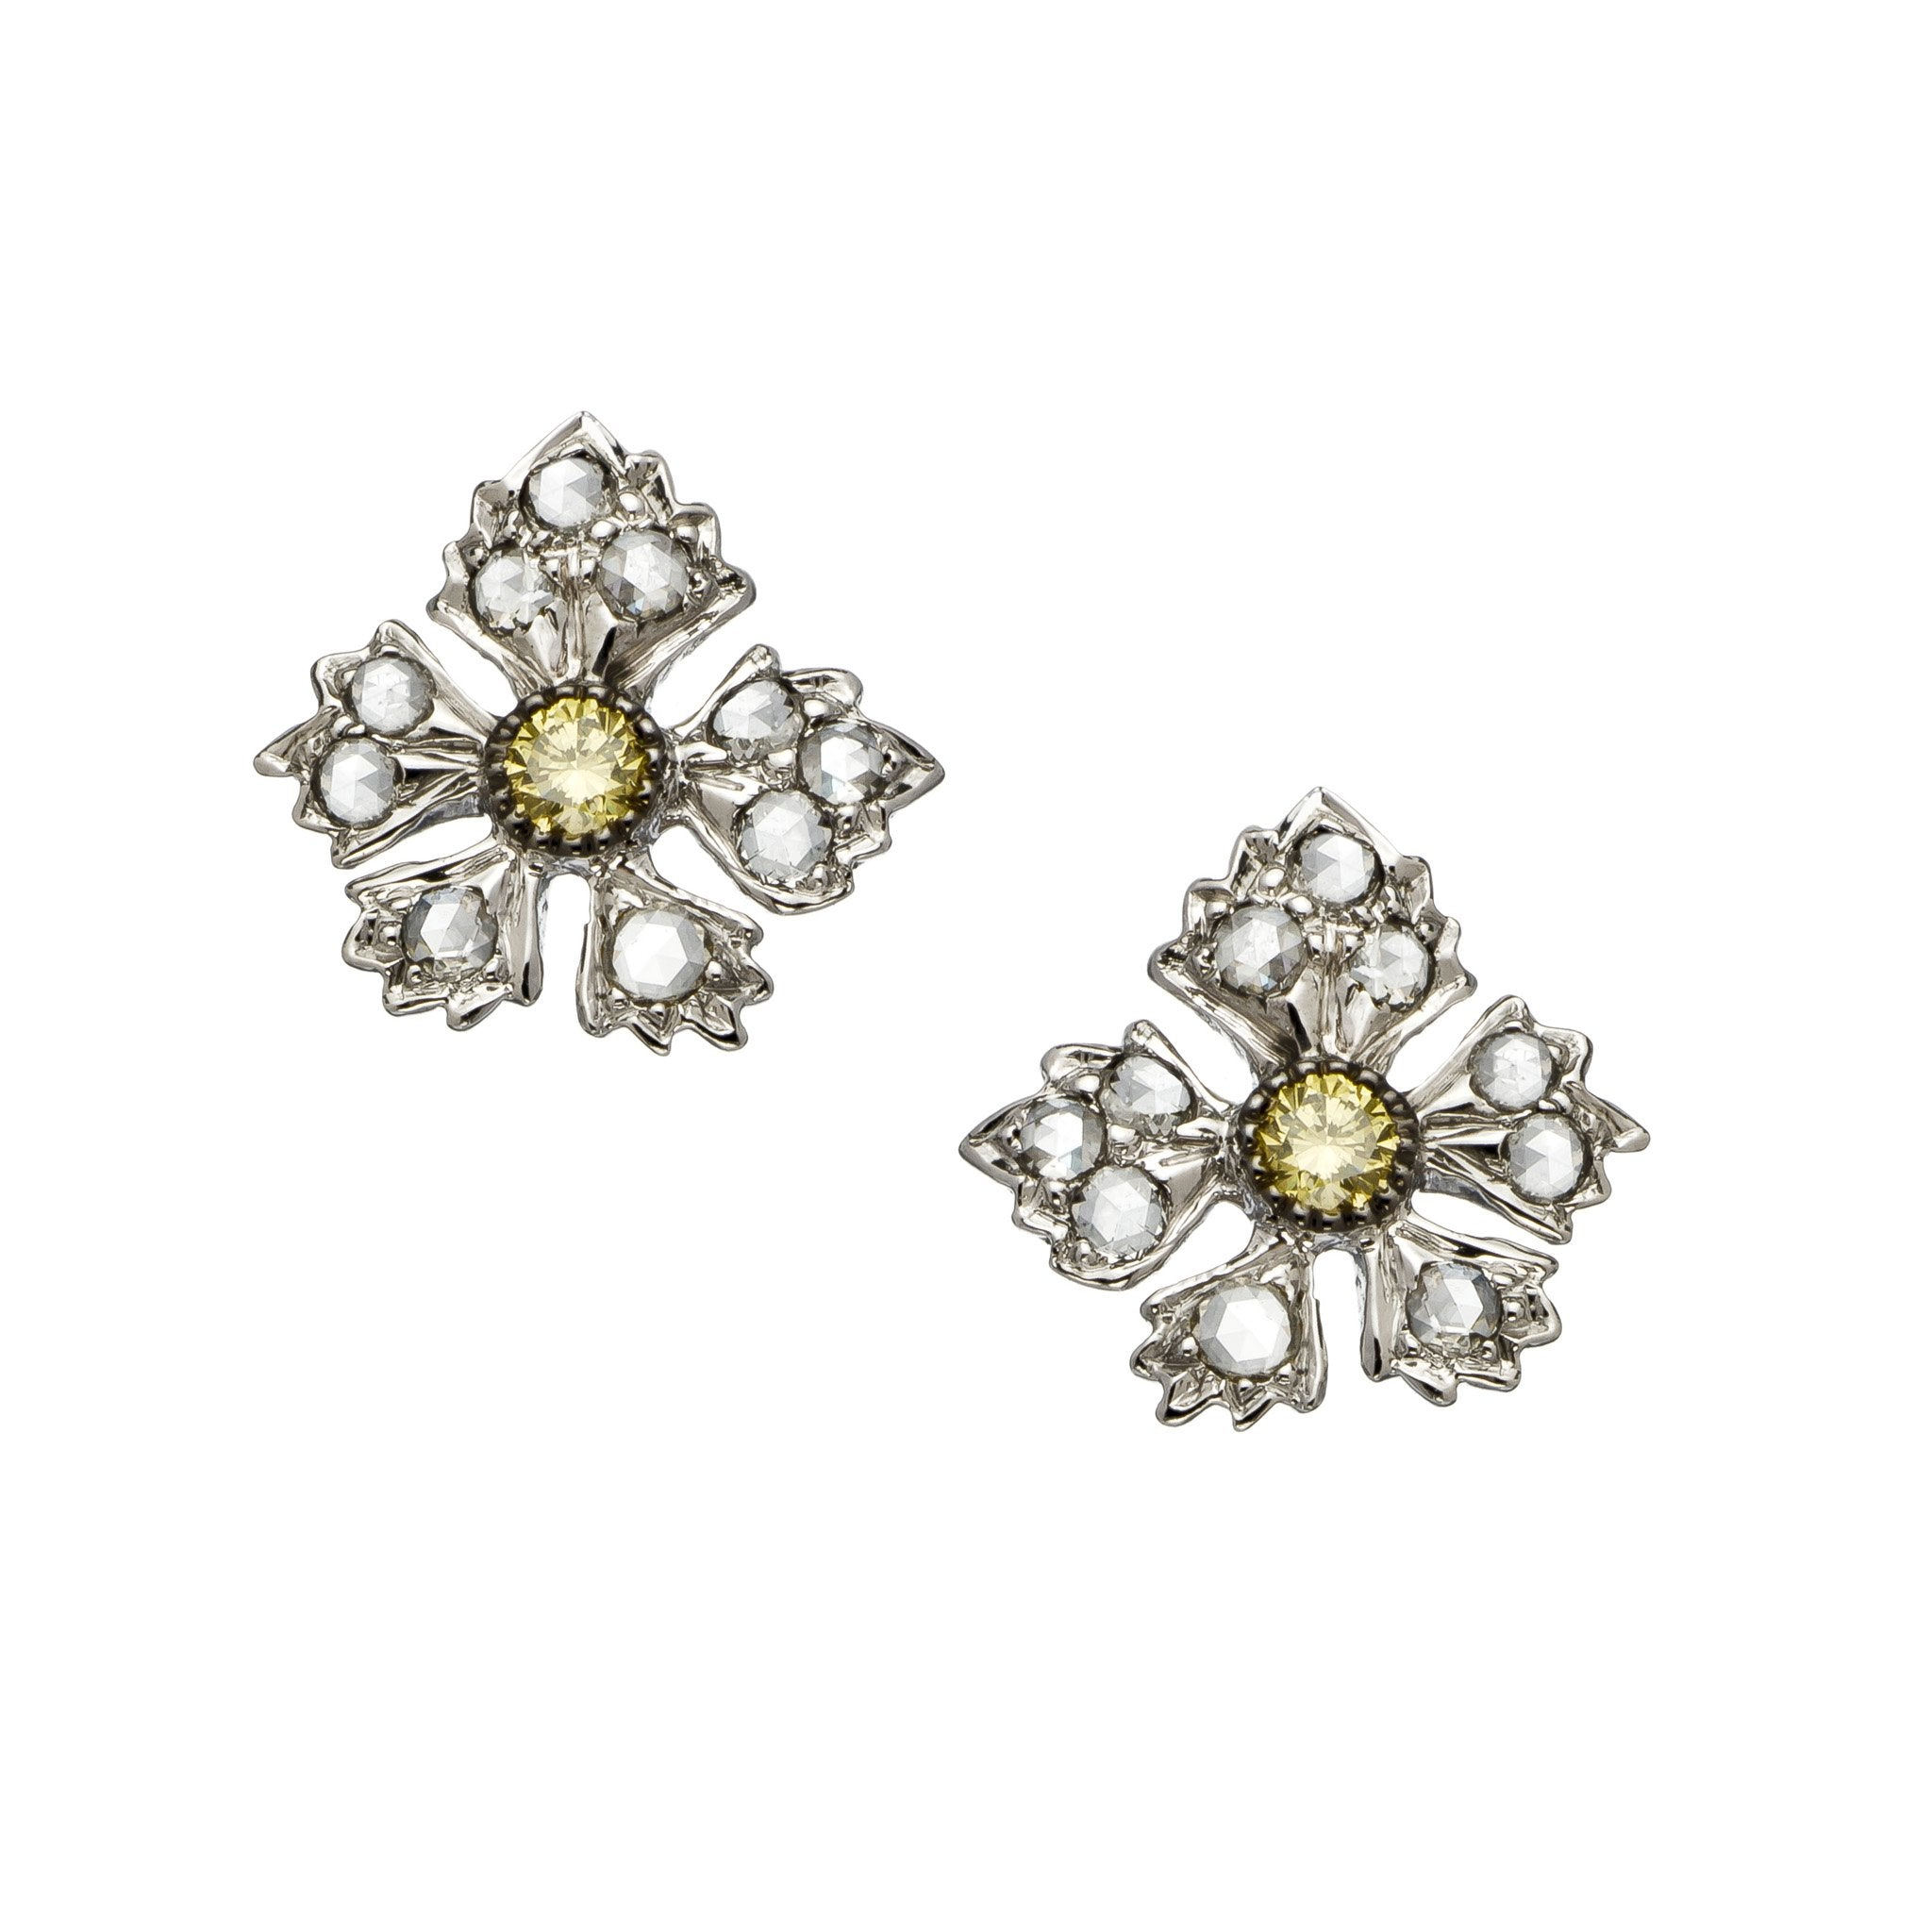 The Enchanted Garden Stud Earrings